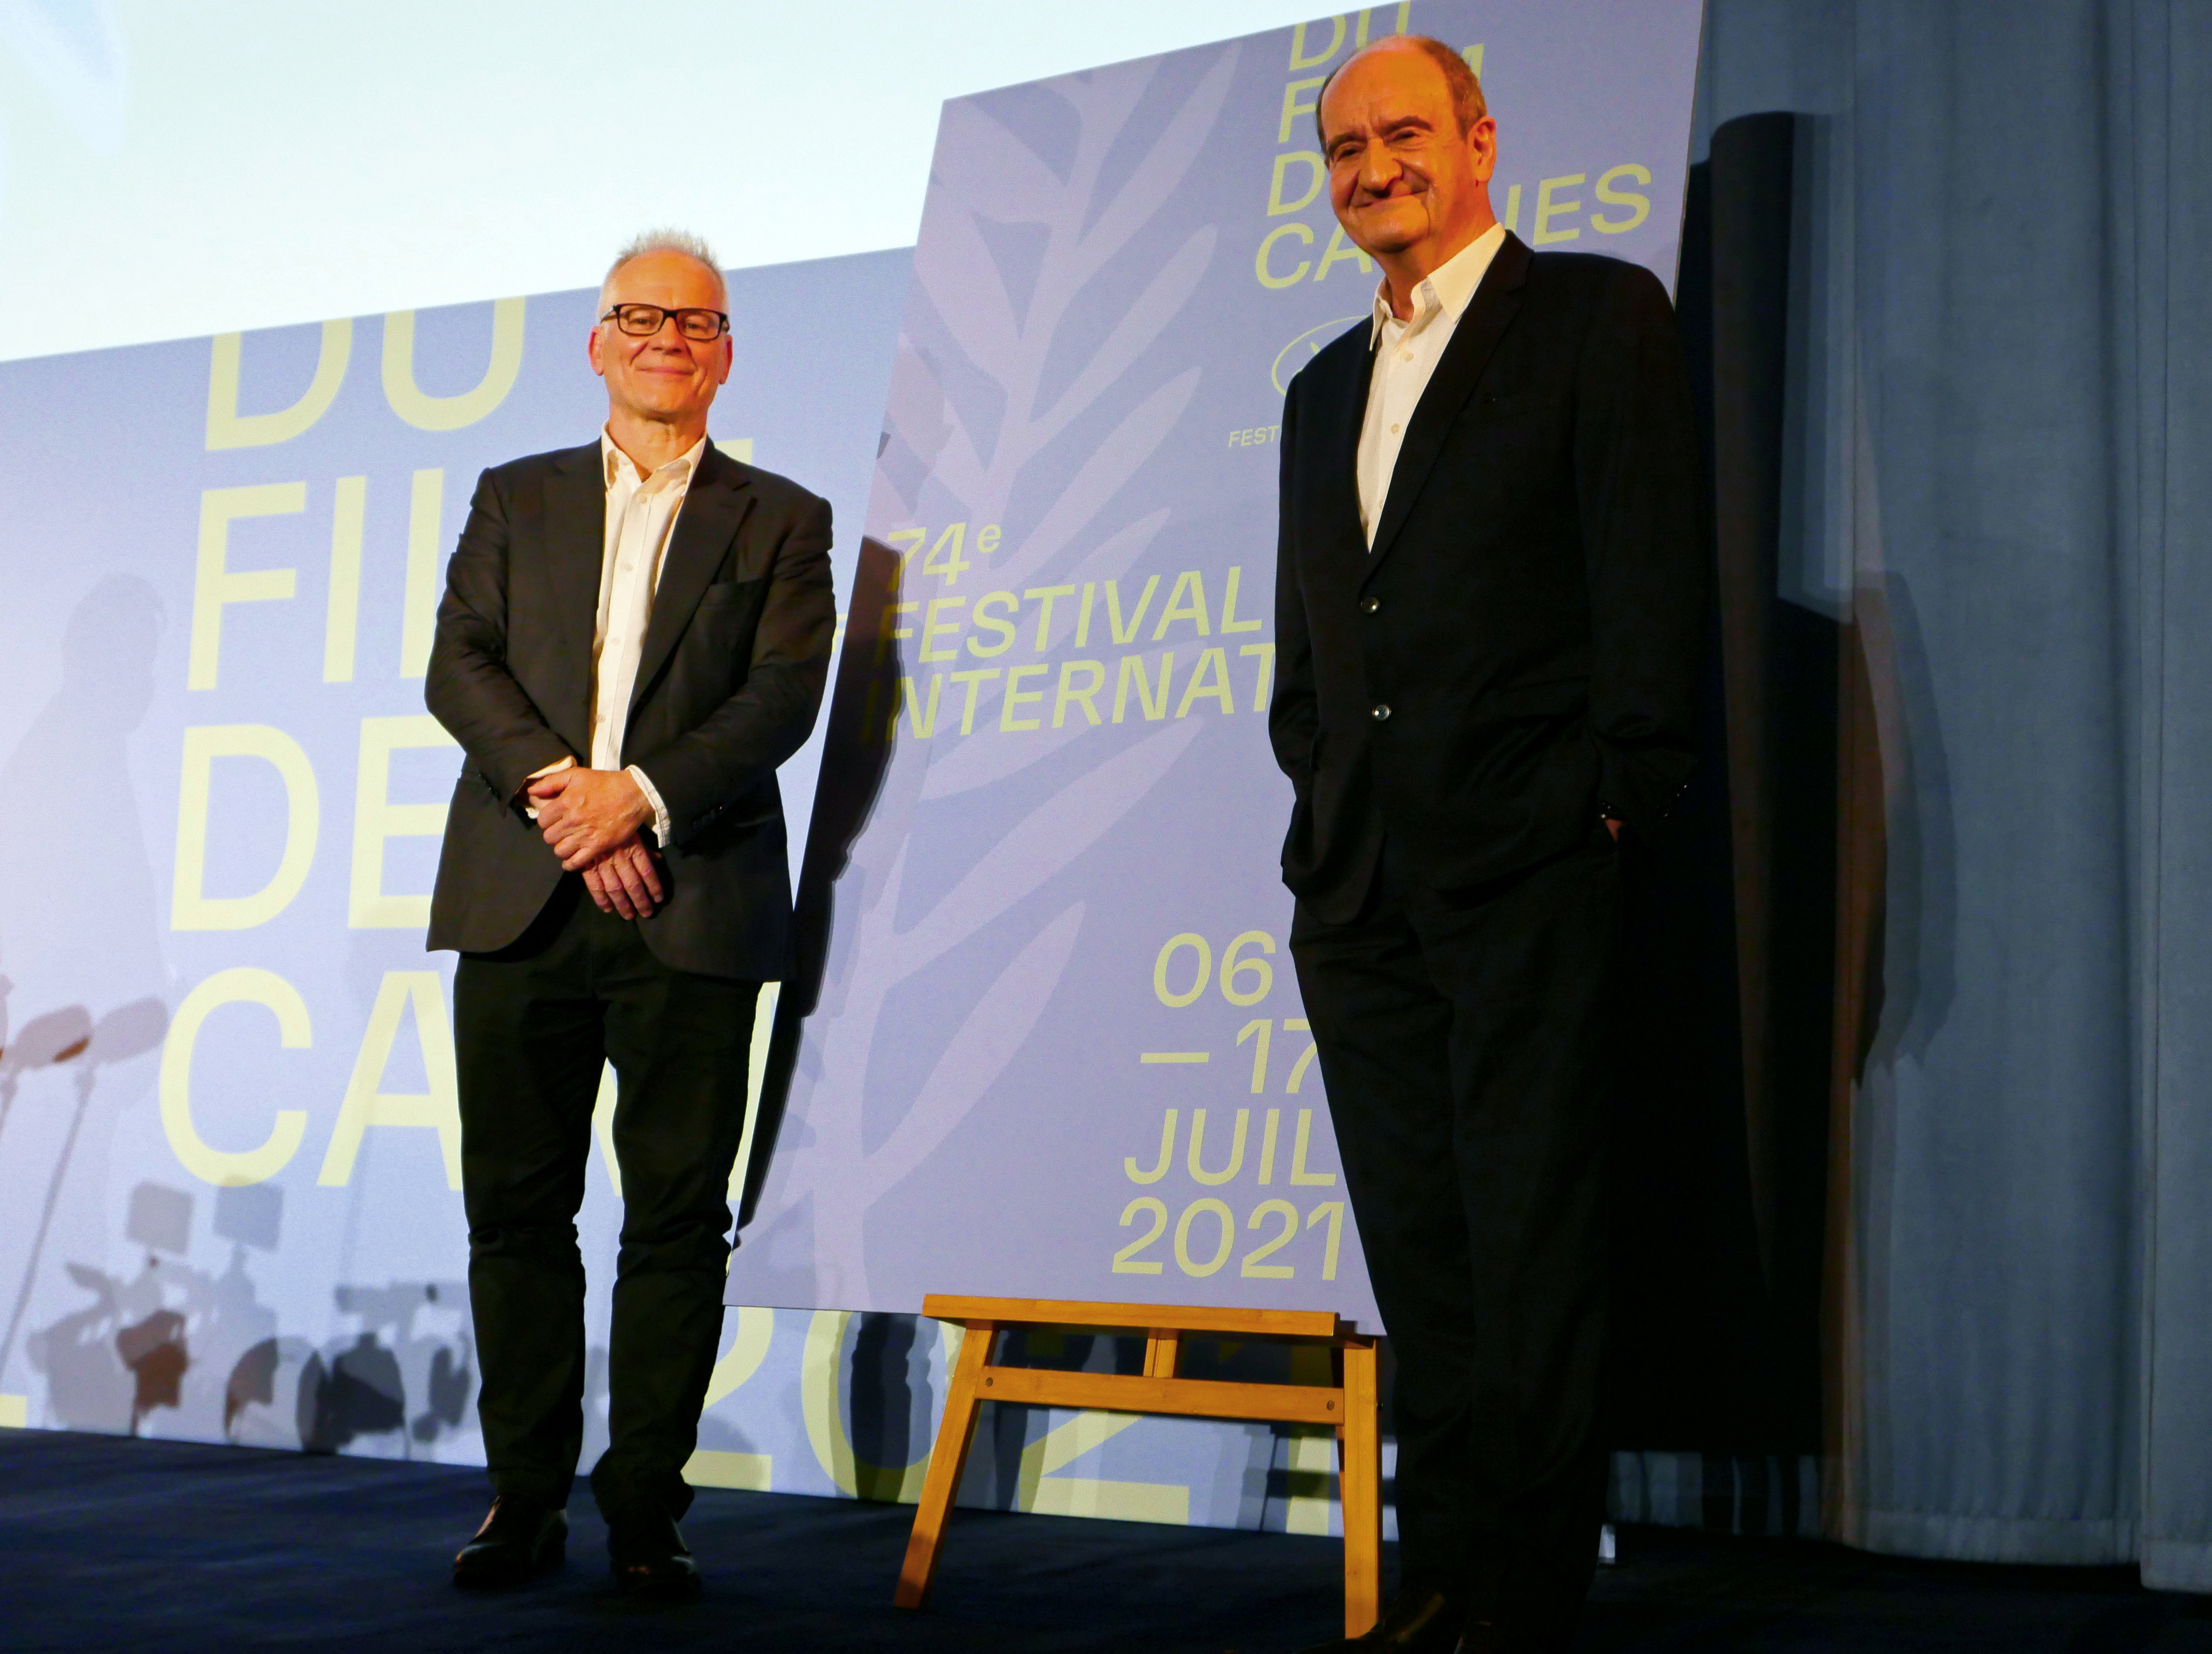 Cannes Film festival General Delegate Thierry Fremaux and Cannes Film festival President Pierre Lescure pose after the presentation of the official selection of the 74th Cannes International Film Festival in Paris, France, June 3, 2021.  REUTERS/Sandra Auger